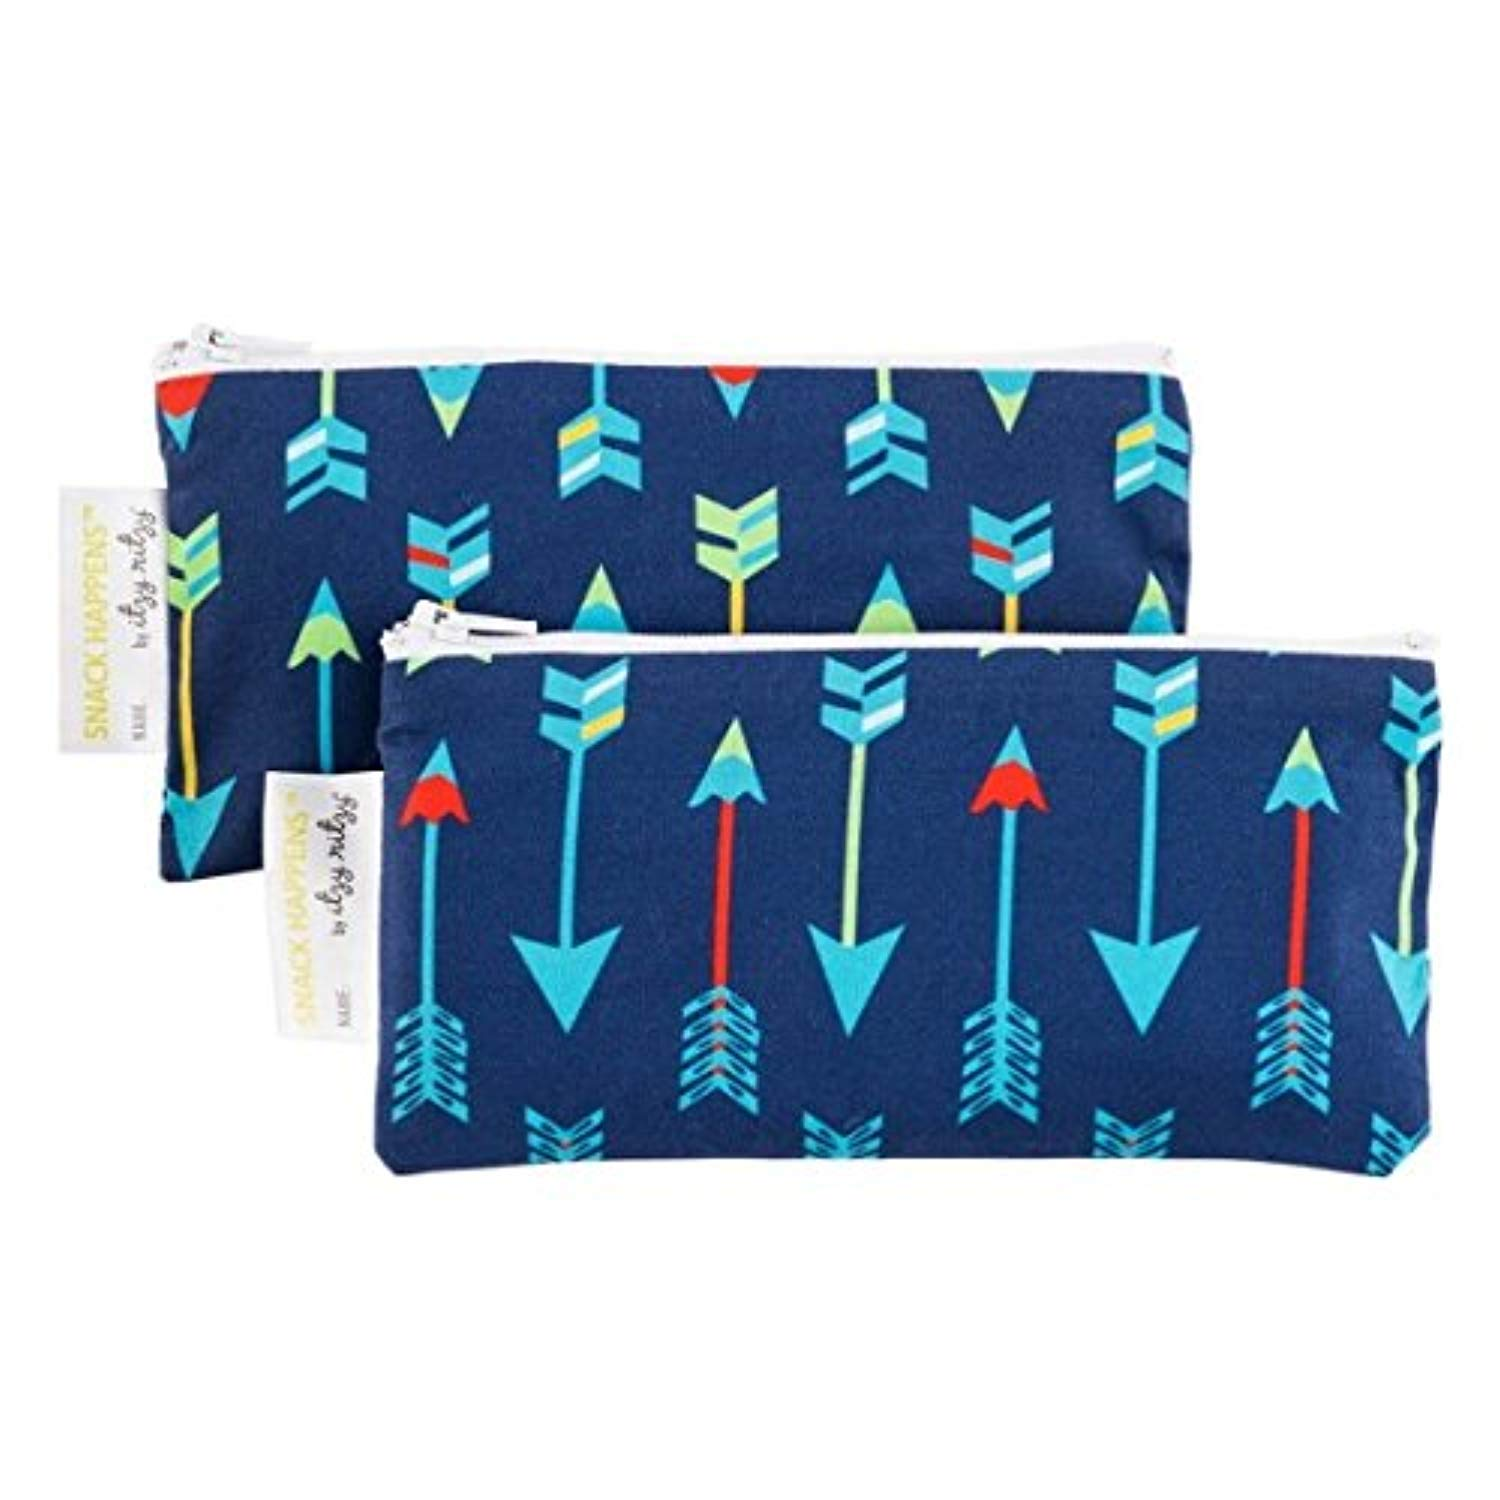 Itzy Ritzy Snack Happens Mini Reusable Snack Bags 2-Pack Bold Arrow 3-Pack (6 Total)